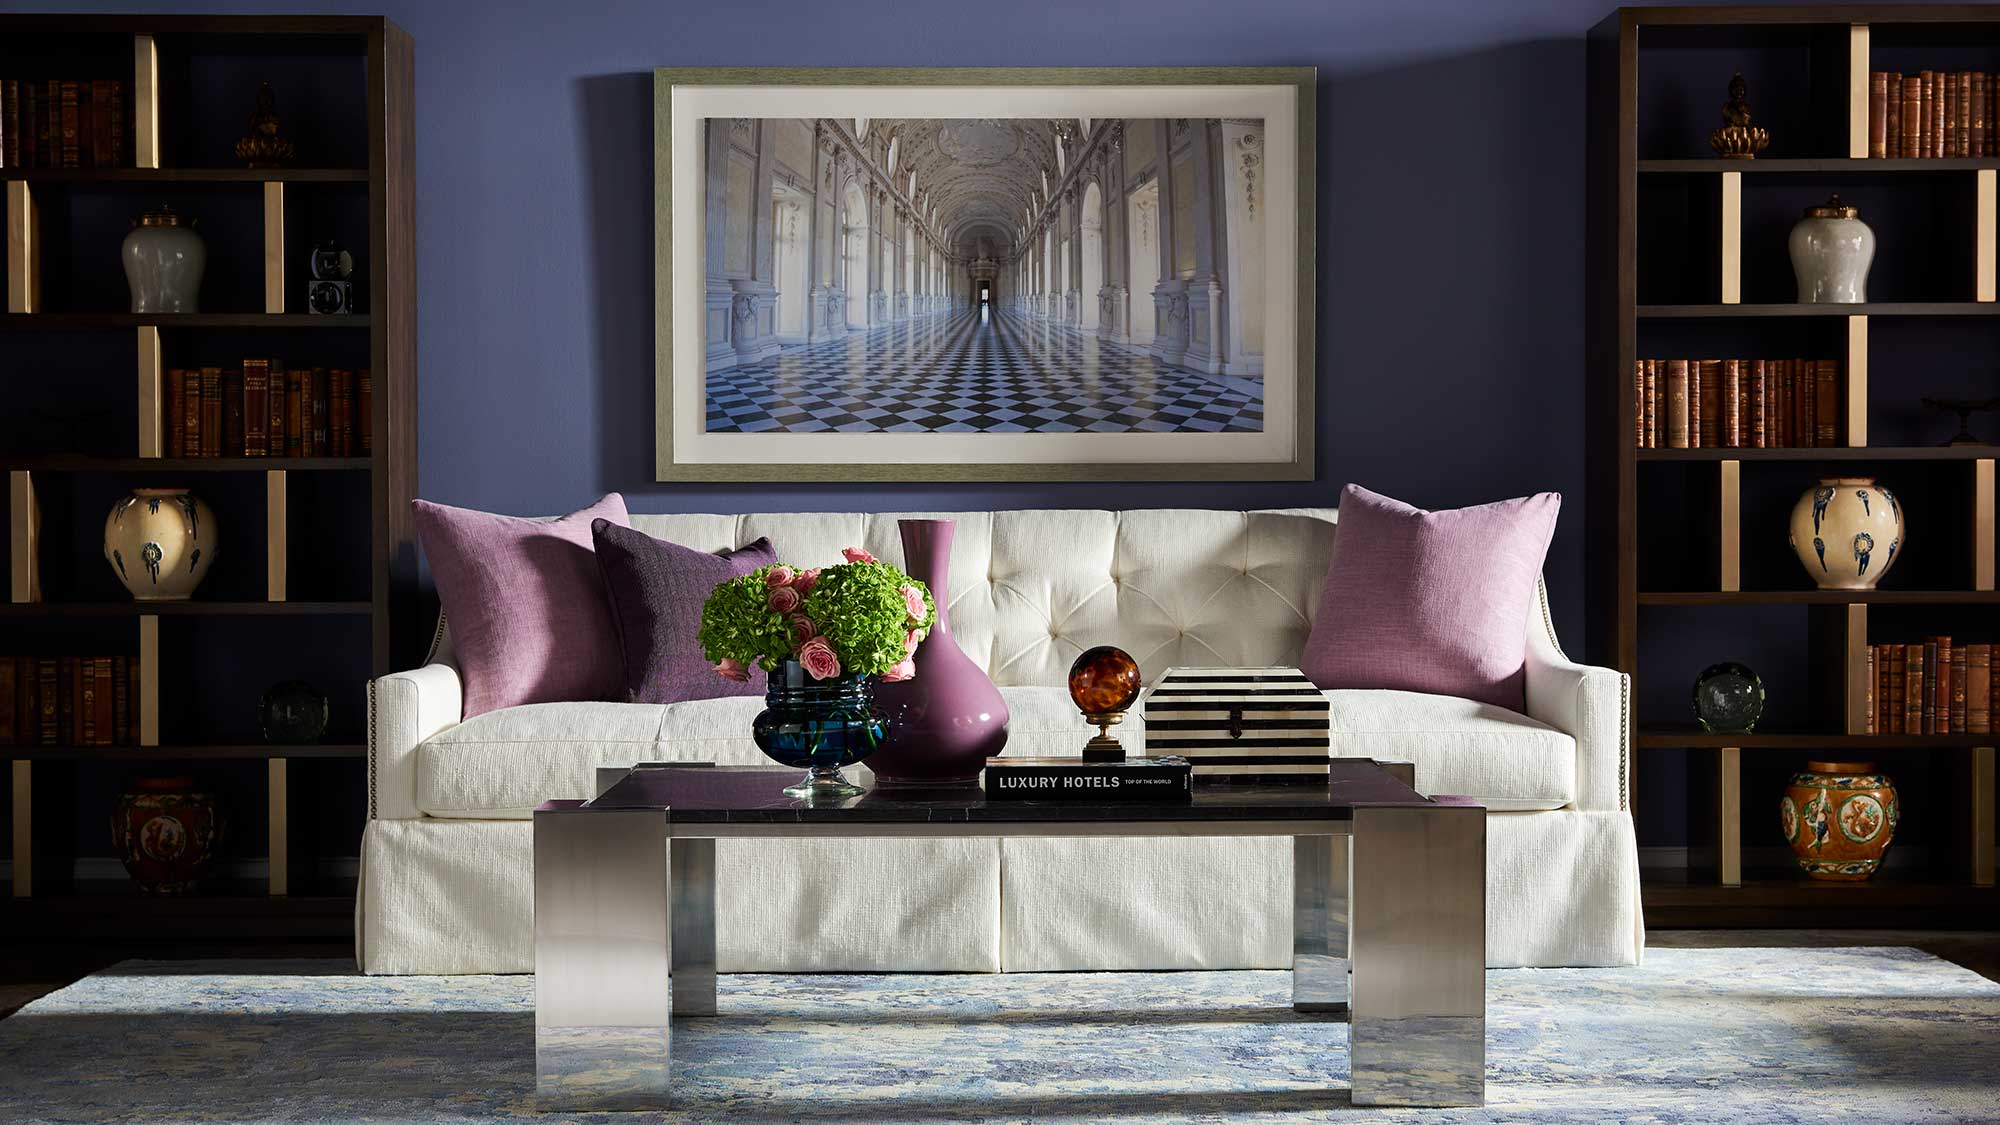 The Art Of Interiors®